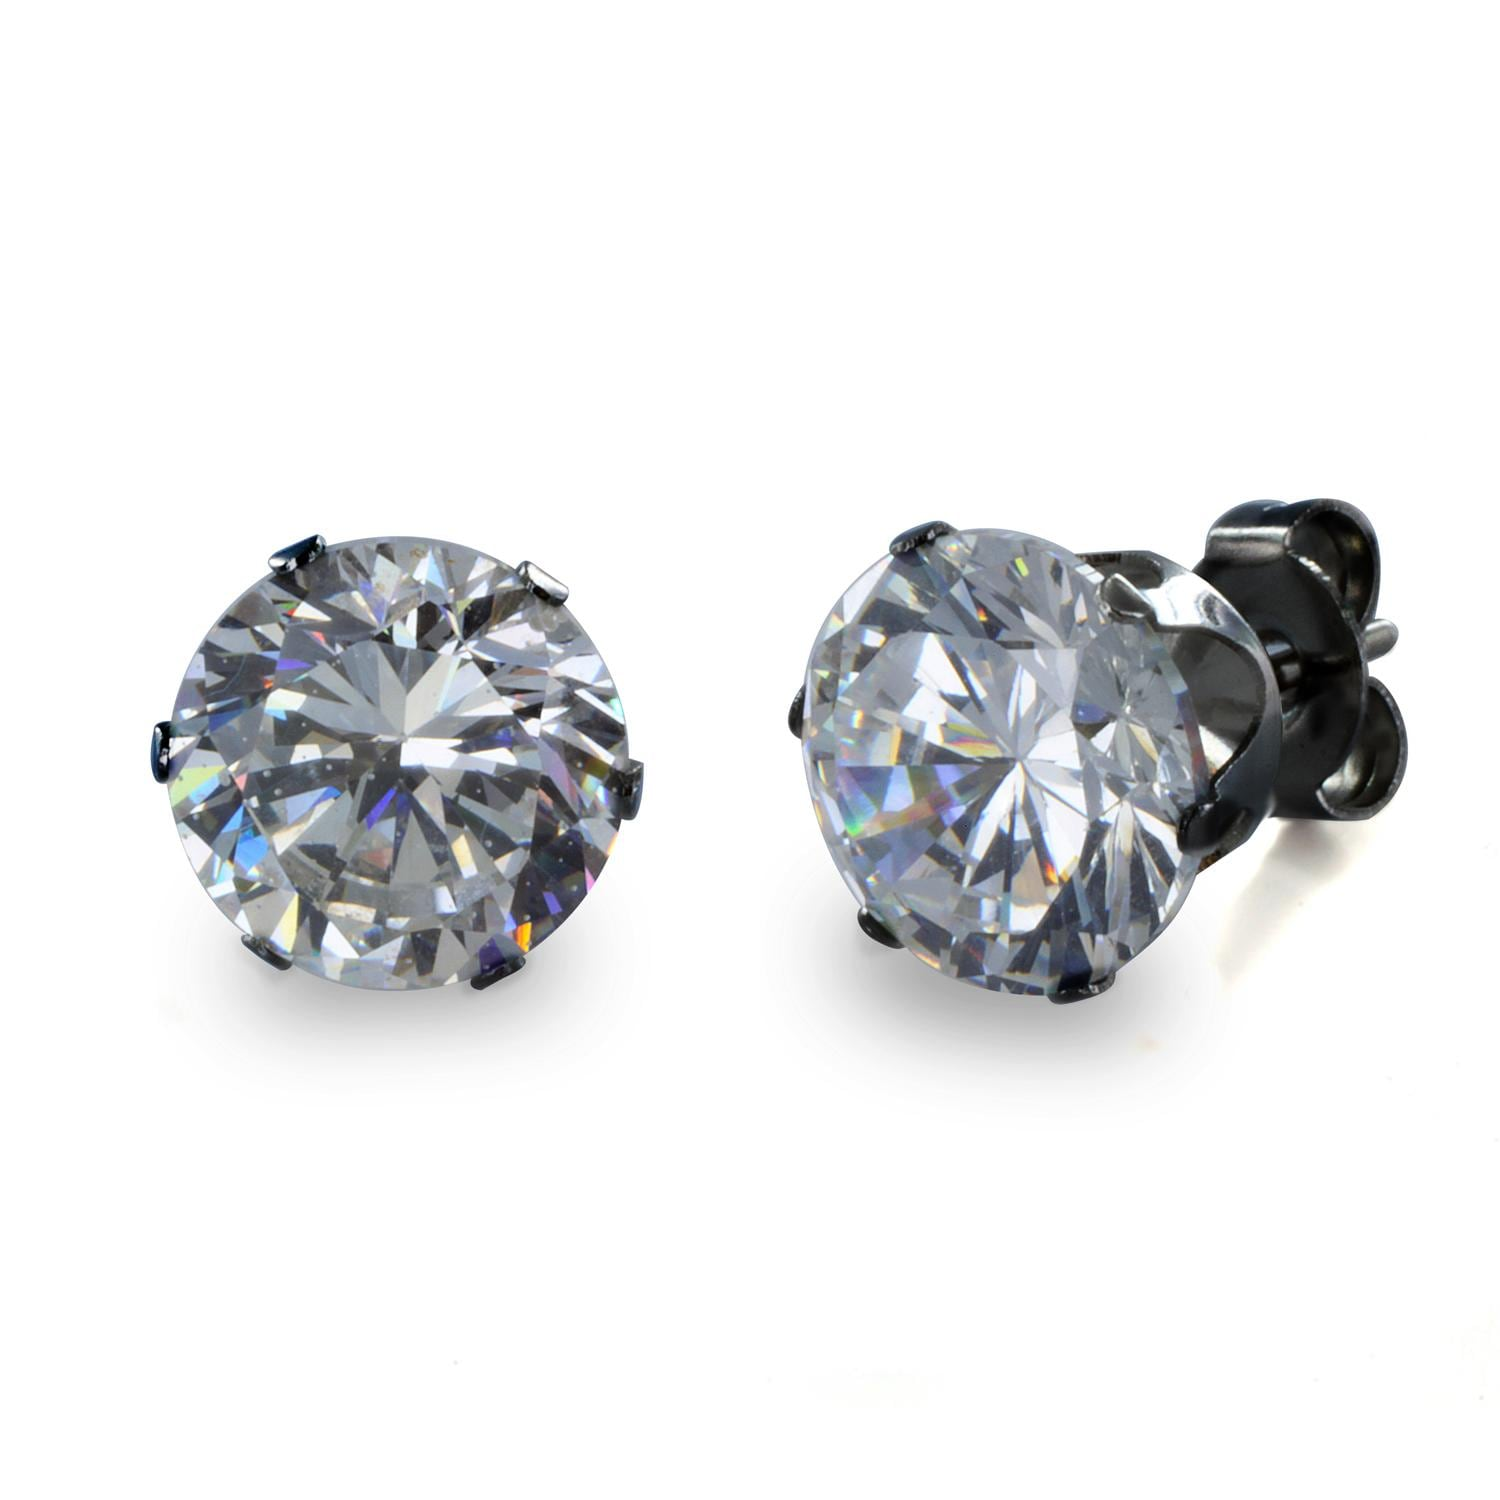 Black Plated Stainless Steel Stud Earrings with Round Clear CZ - 8 mm